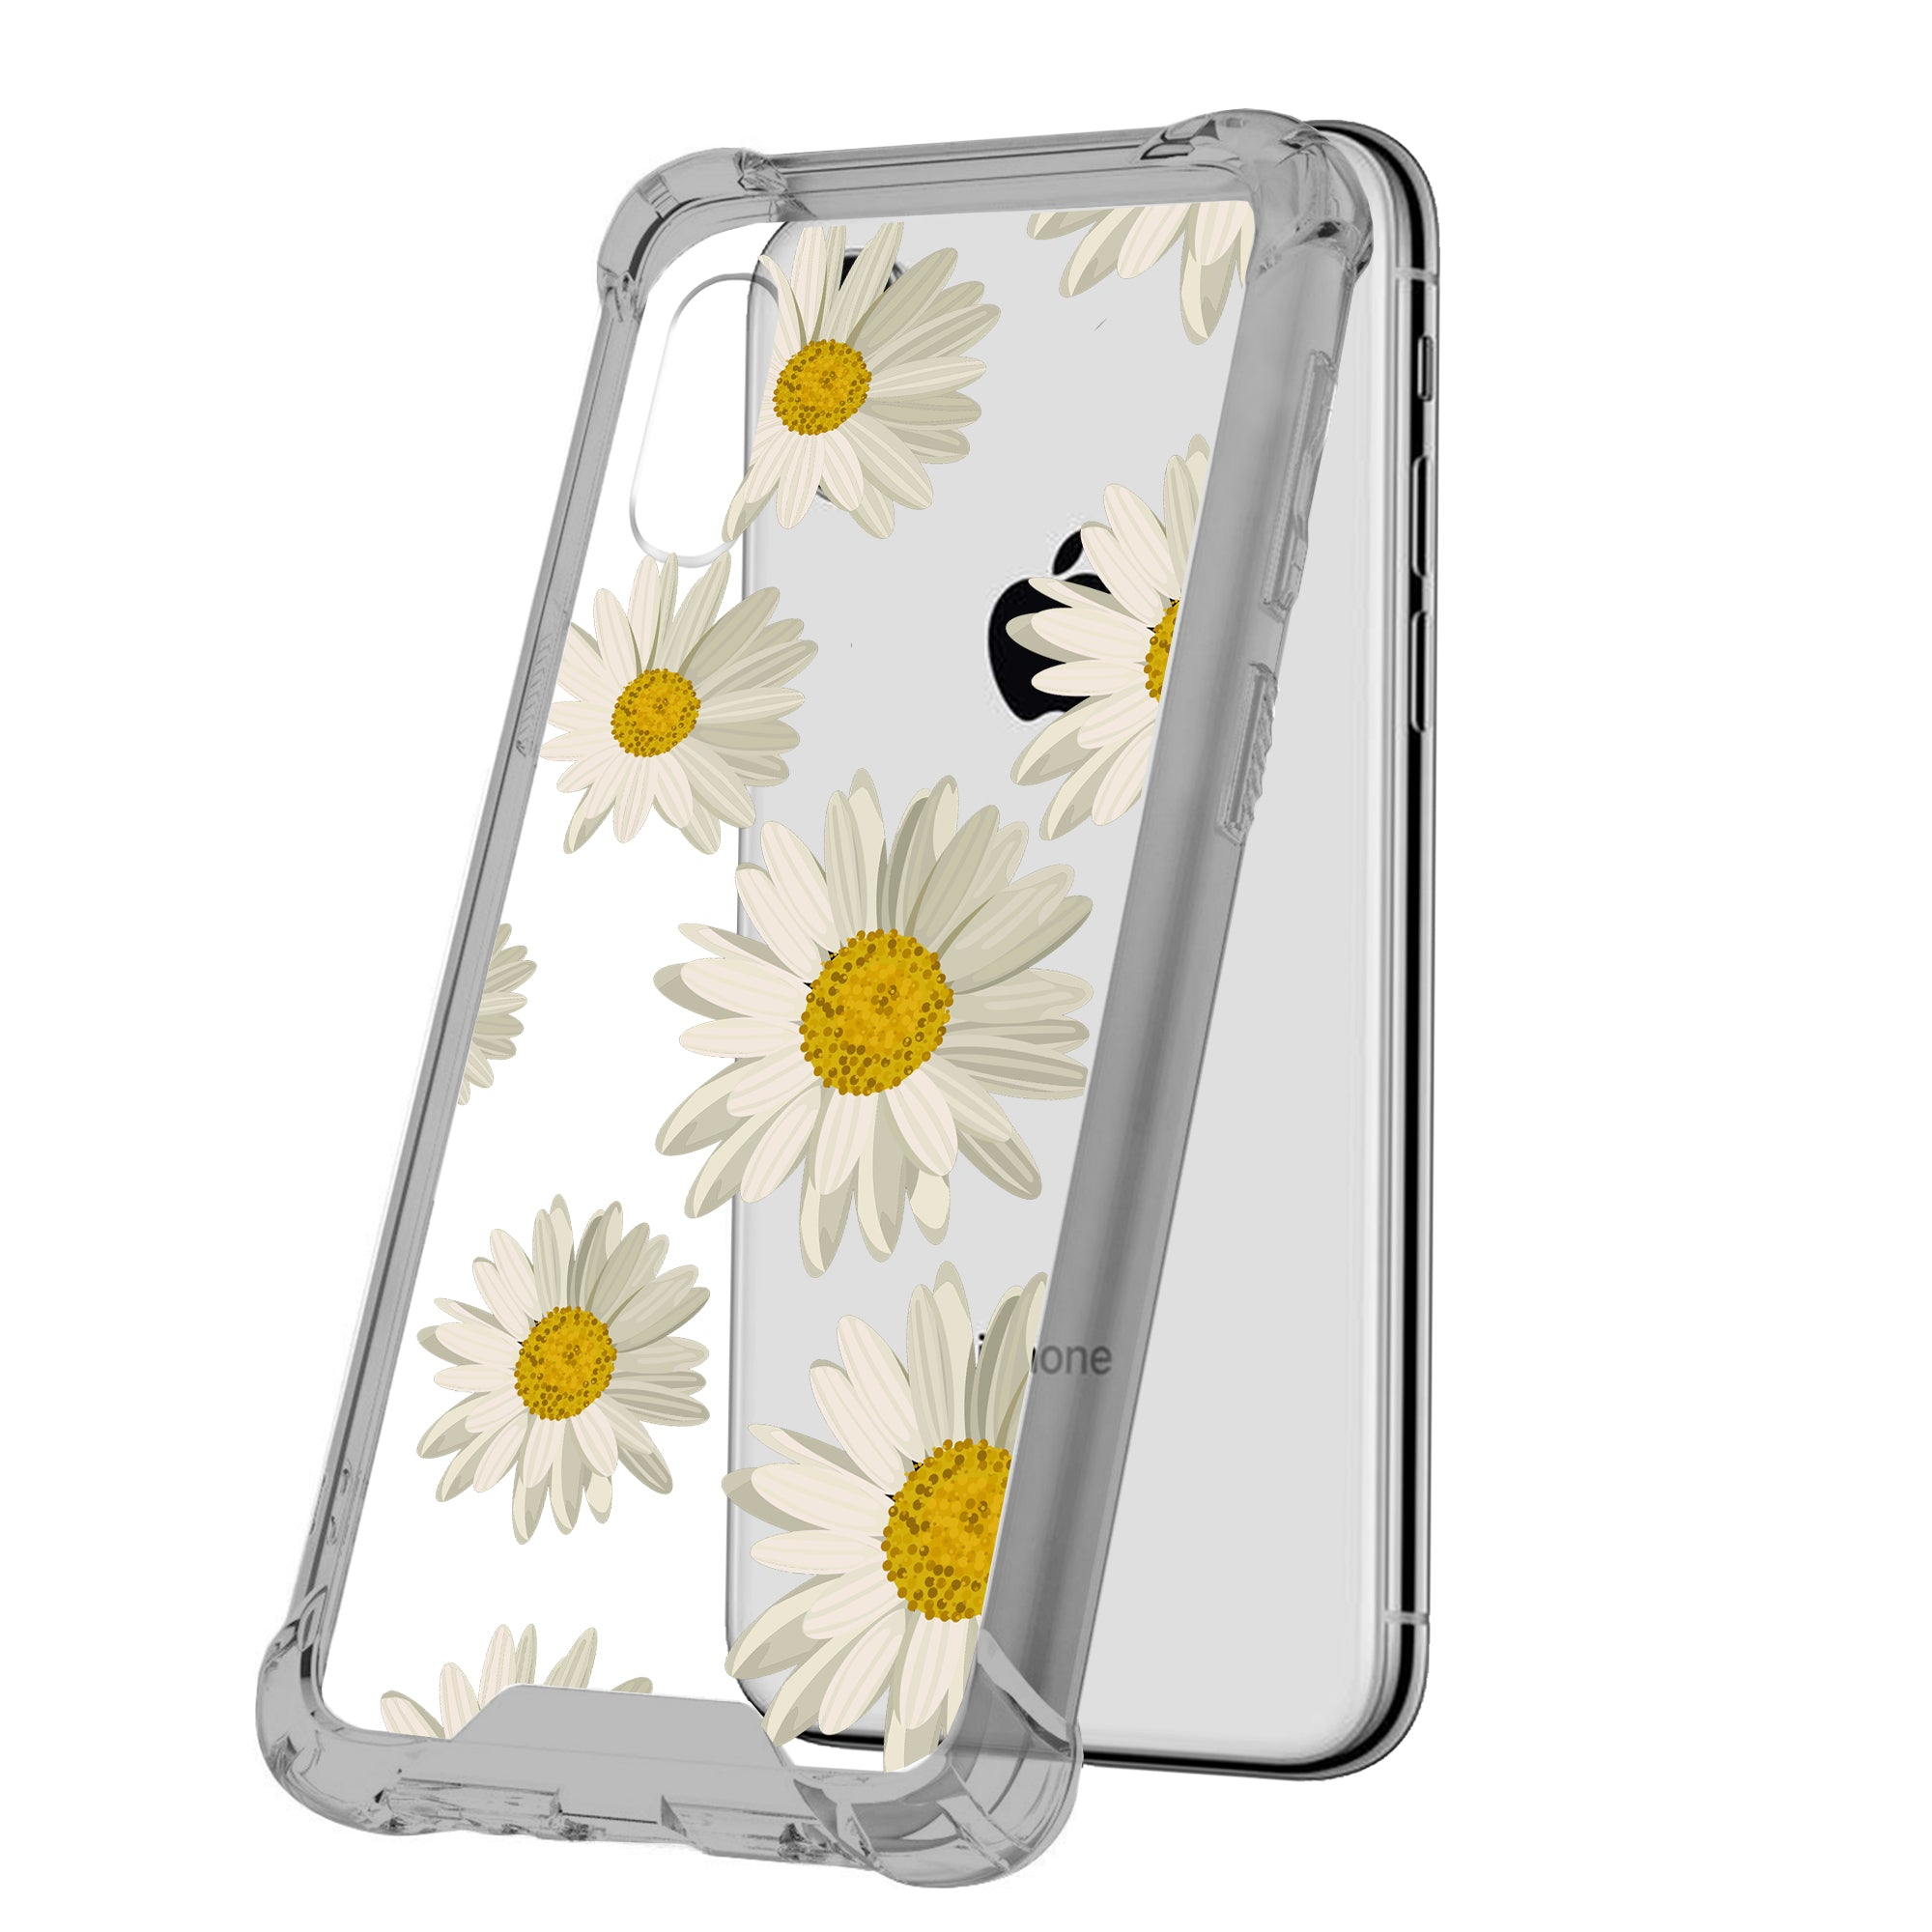 For-Apple-iPhone-Xs-Max-iPhone-Xs-Max-Black-TPU-Bumper-Case-Floral-Designs thumbnail 11